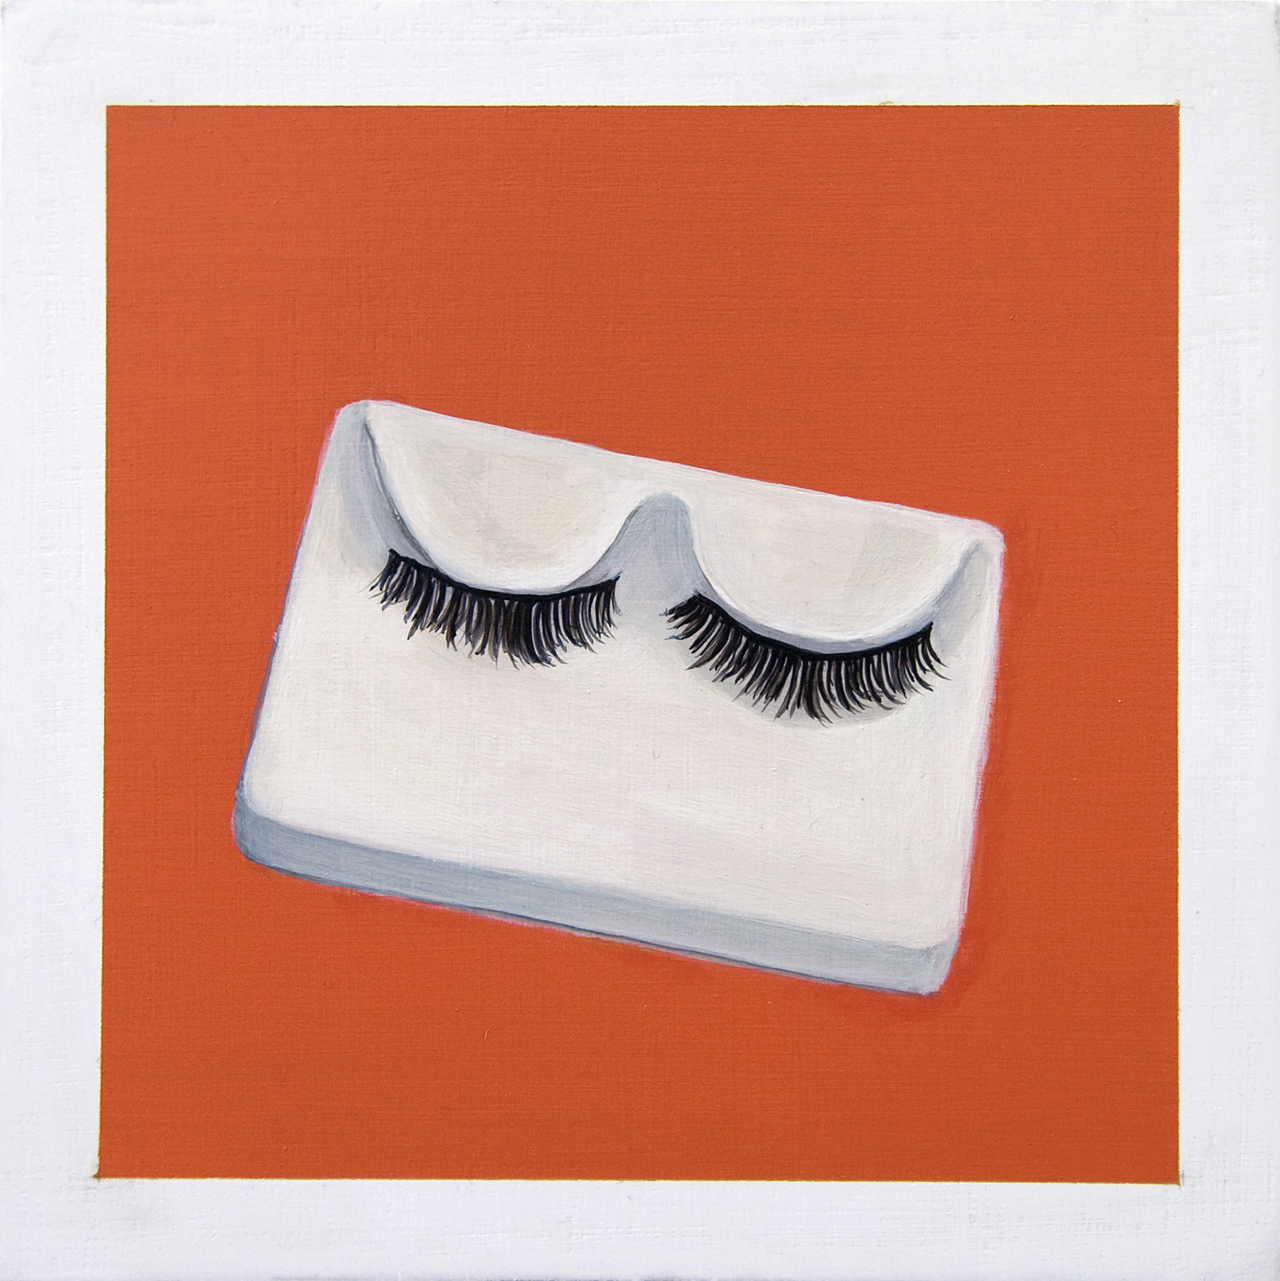 False Lashes From the series You've Come a Long Way, Baby, 2017 Acrylic on birch ply, 6 x 6 in